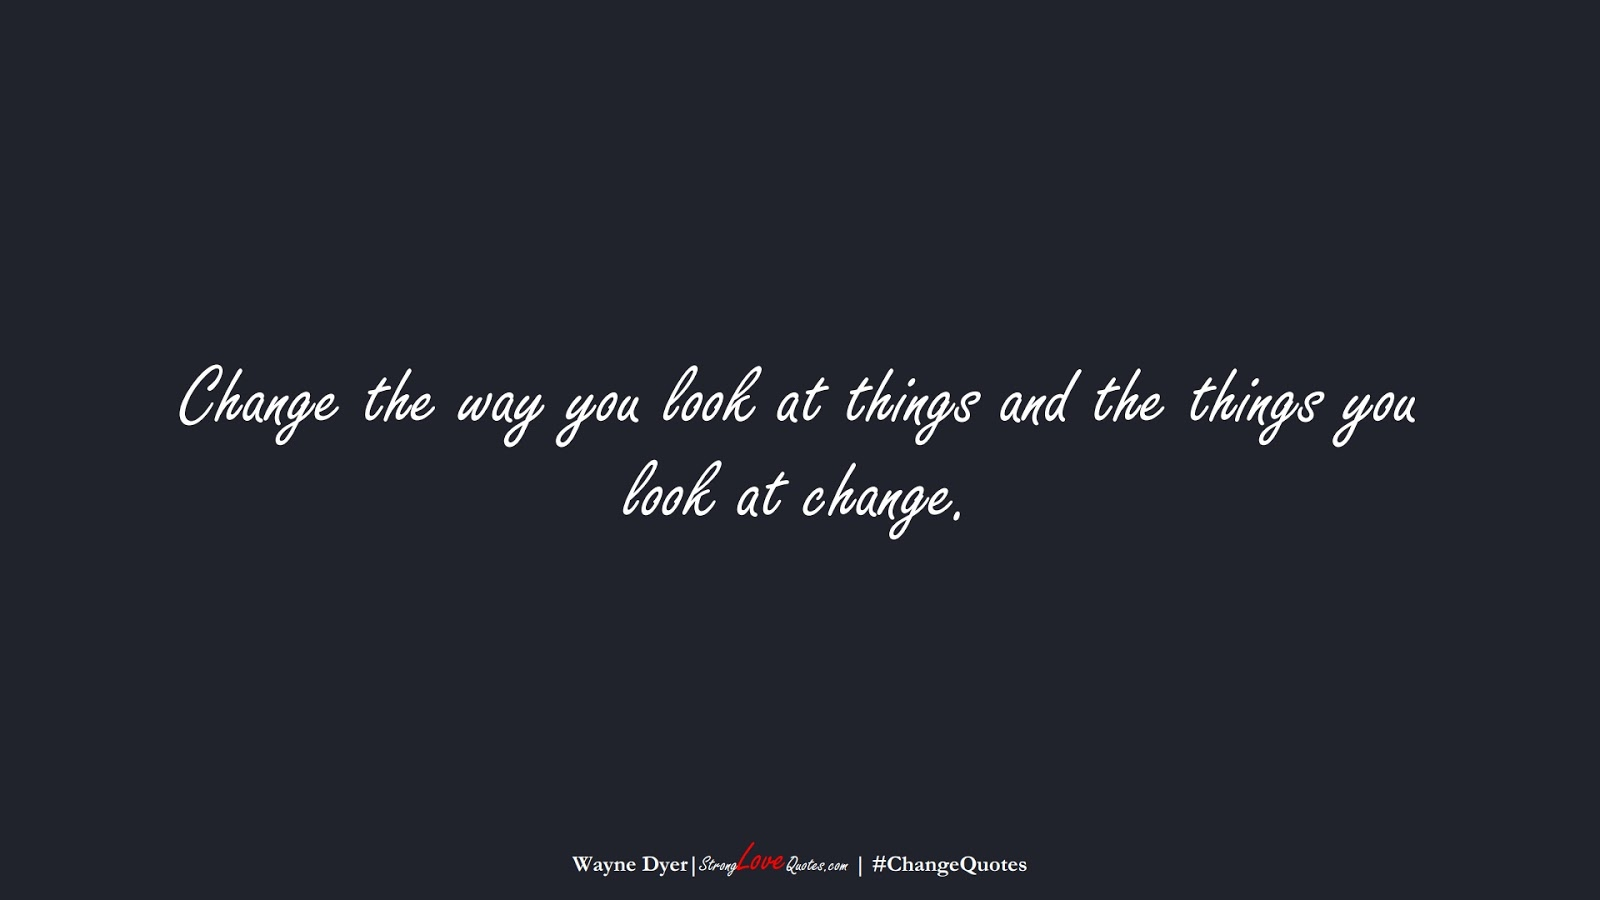 Change the way you look at things and the things you look at change. (Wayne Dyer);  #ChangeQuotes